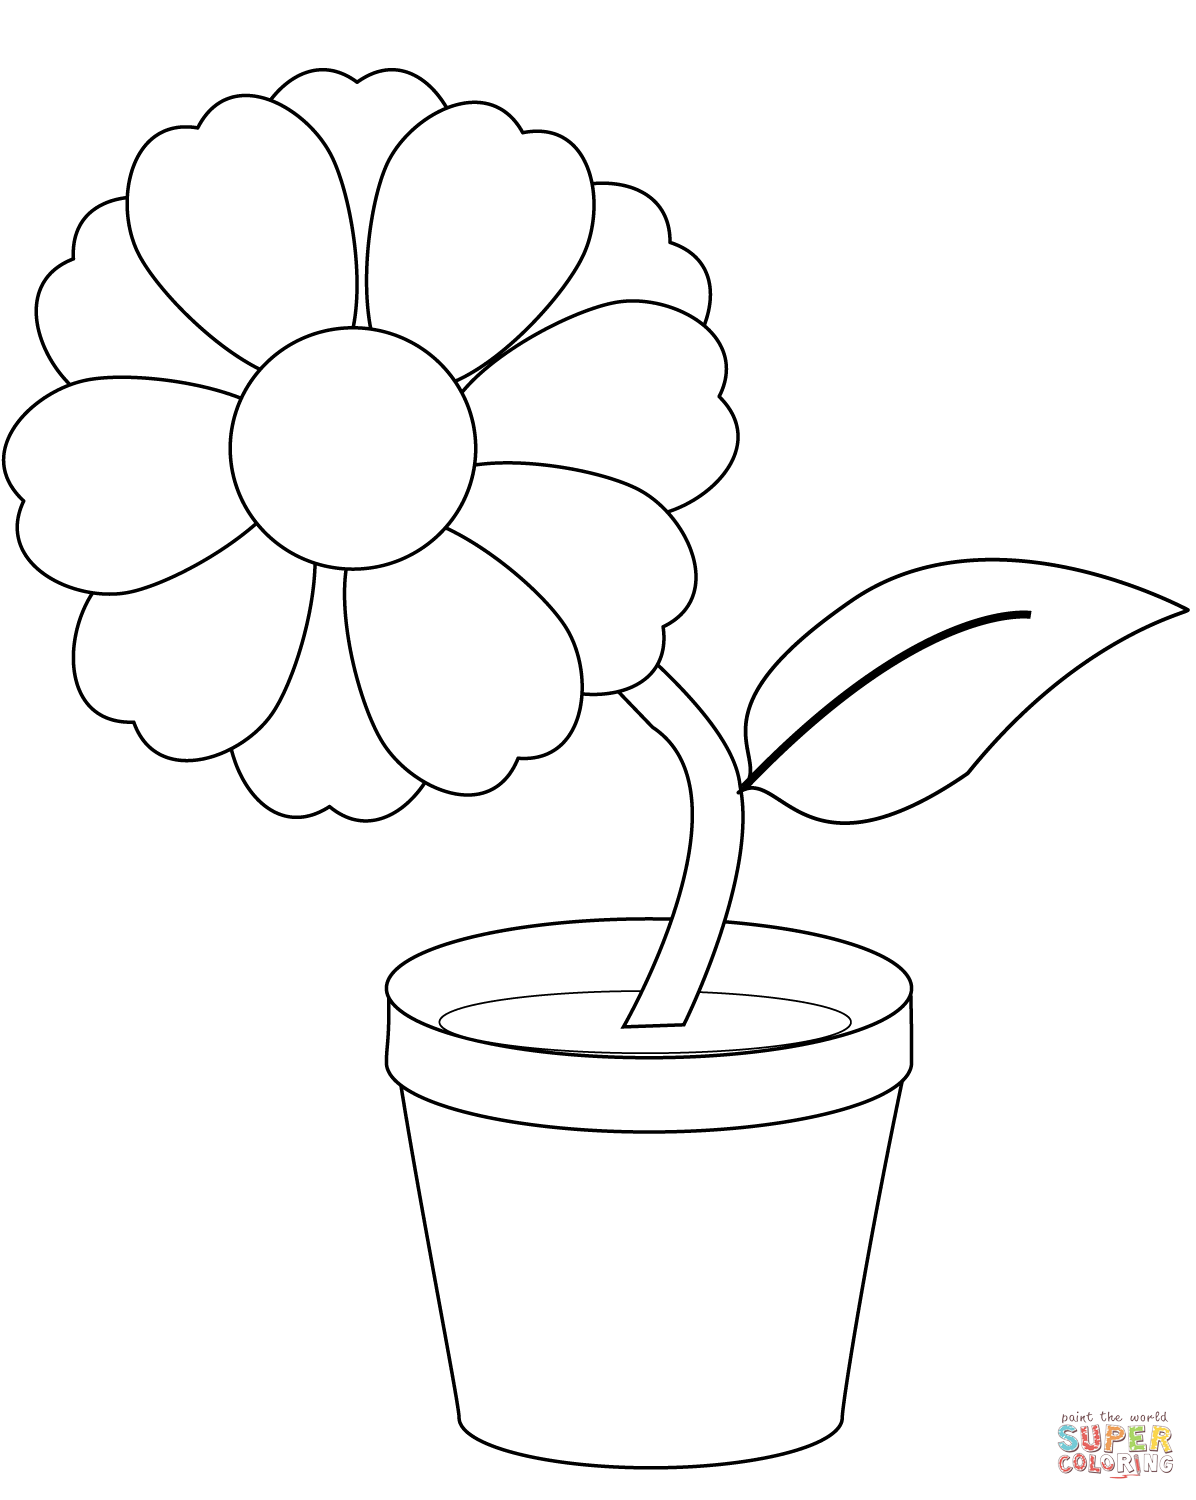 Flower Pot Coloring Page Coloringcrew Com Flower Printable Coloring Pages Flower Stencil Patterns